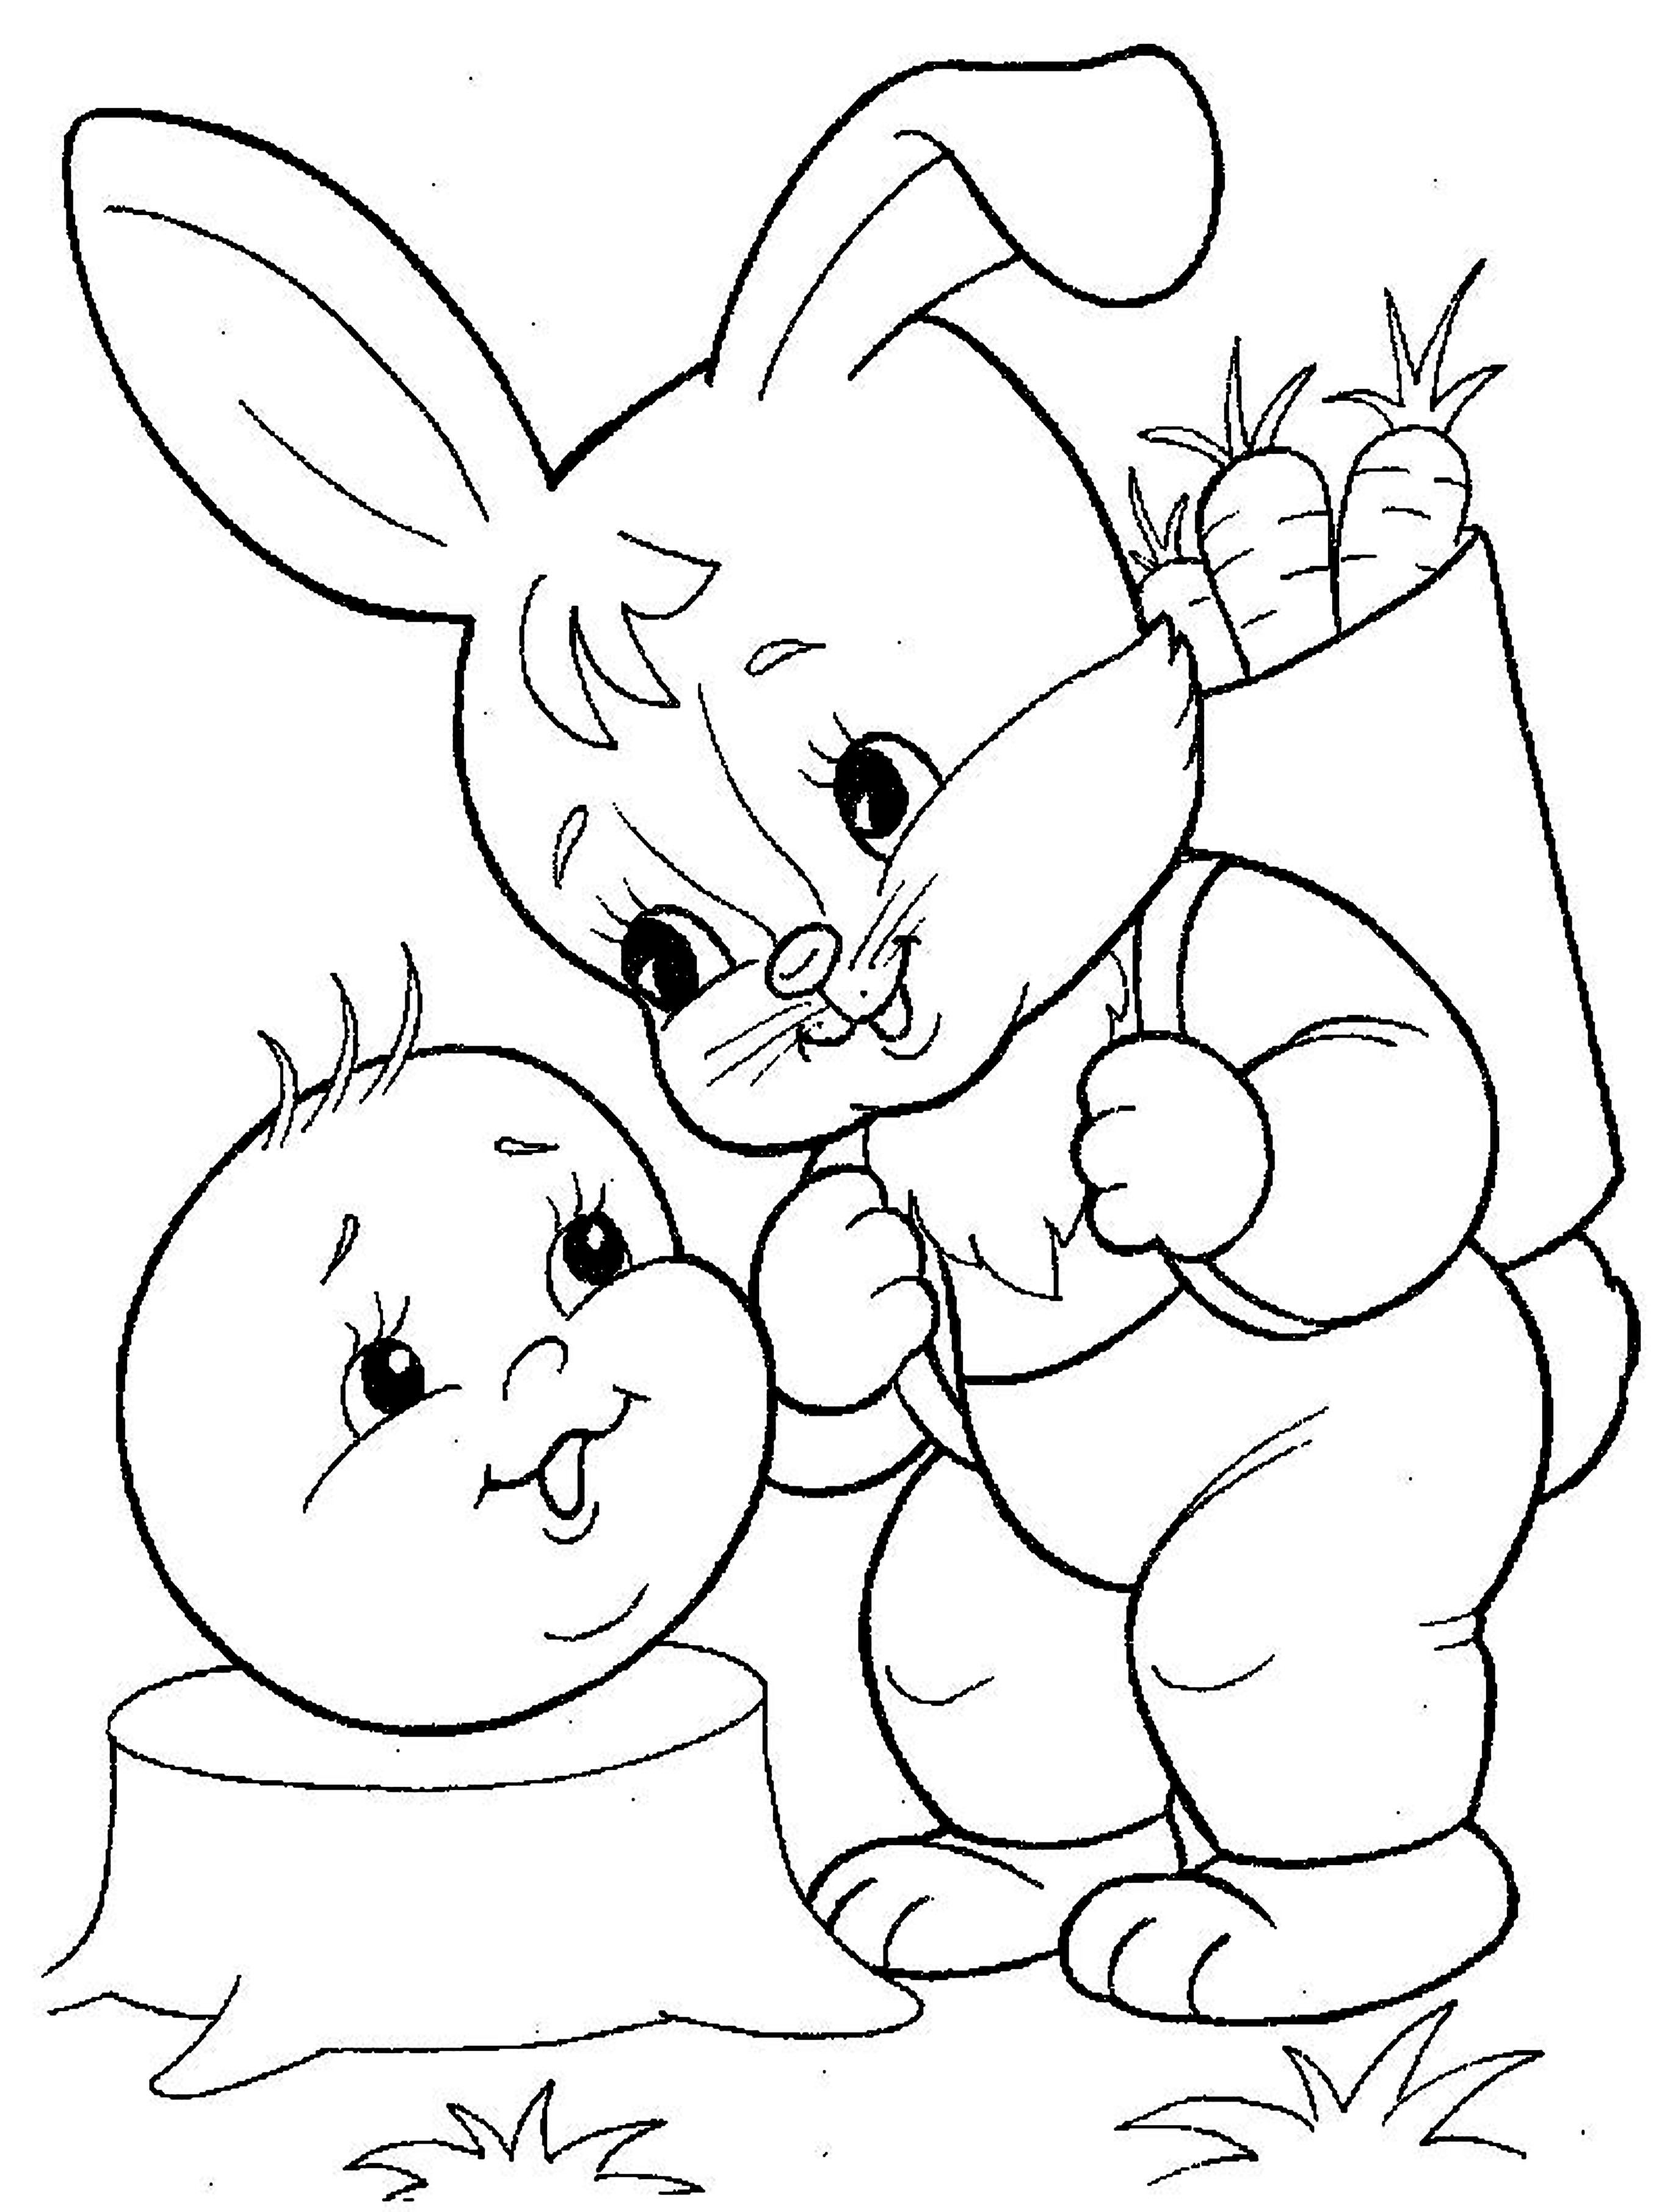 Coloring coloring pages to the tale bun Zayats, and Zaets bun, bun with a hare,